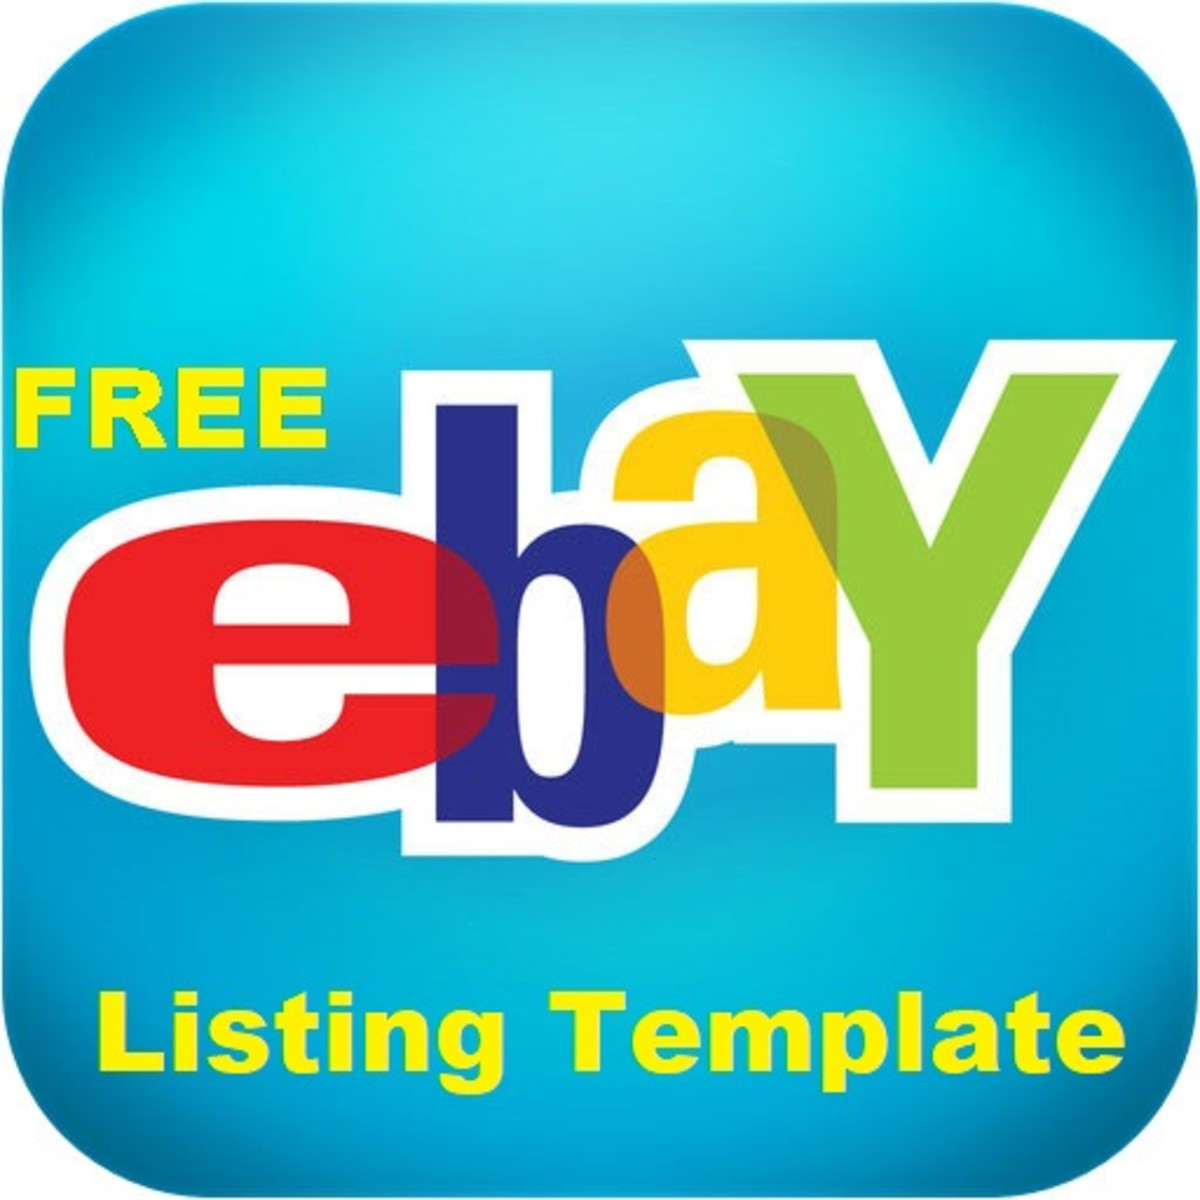 A Free Ebay Listing Template for New Sellers